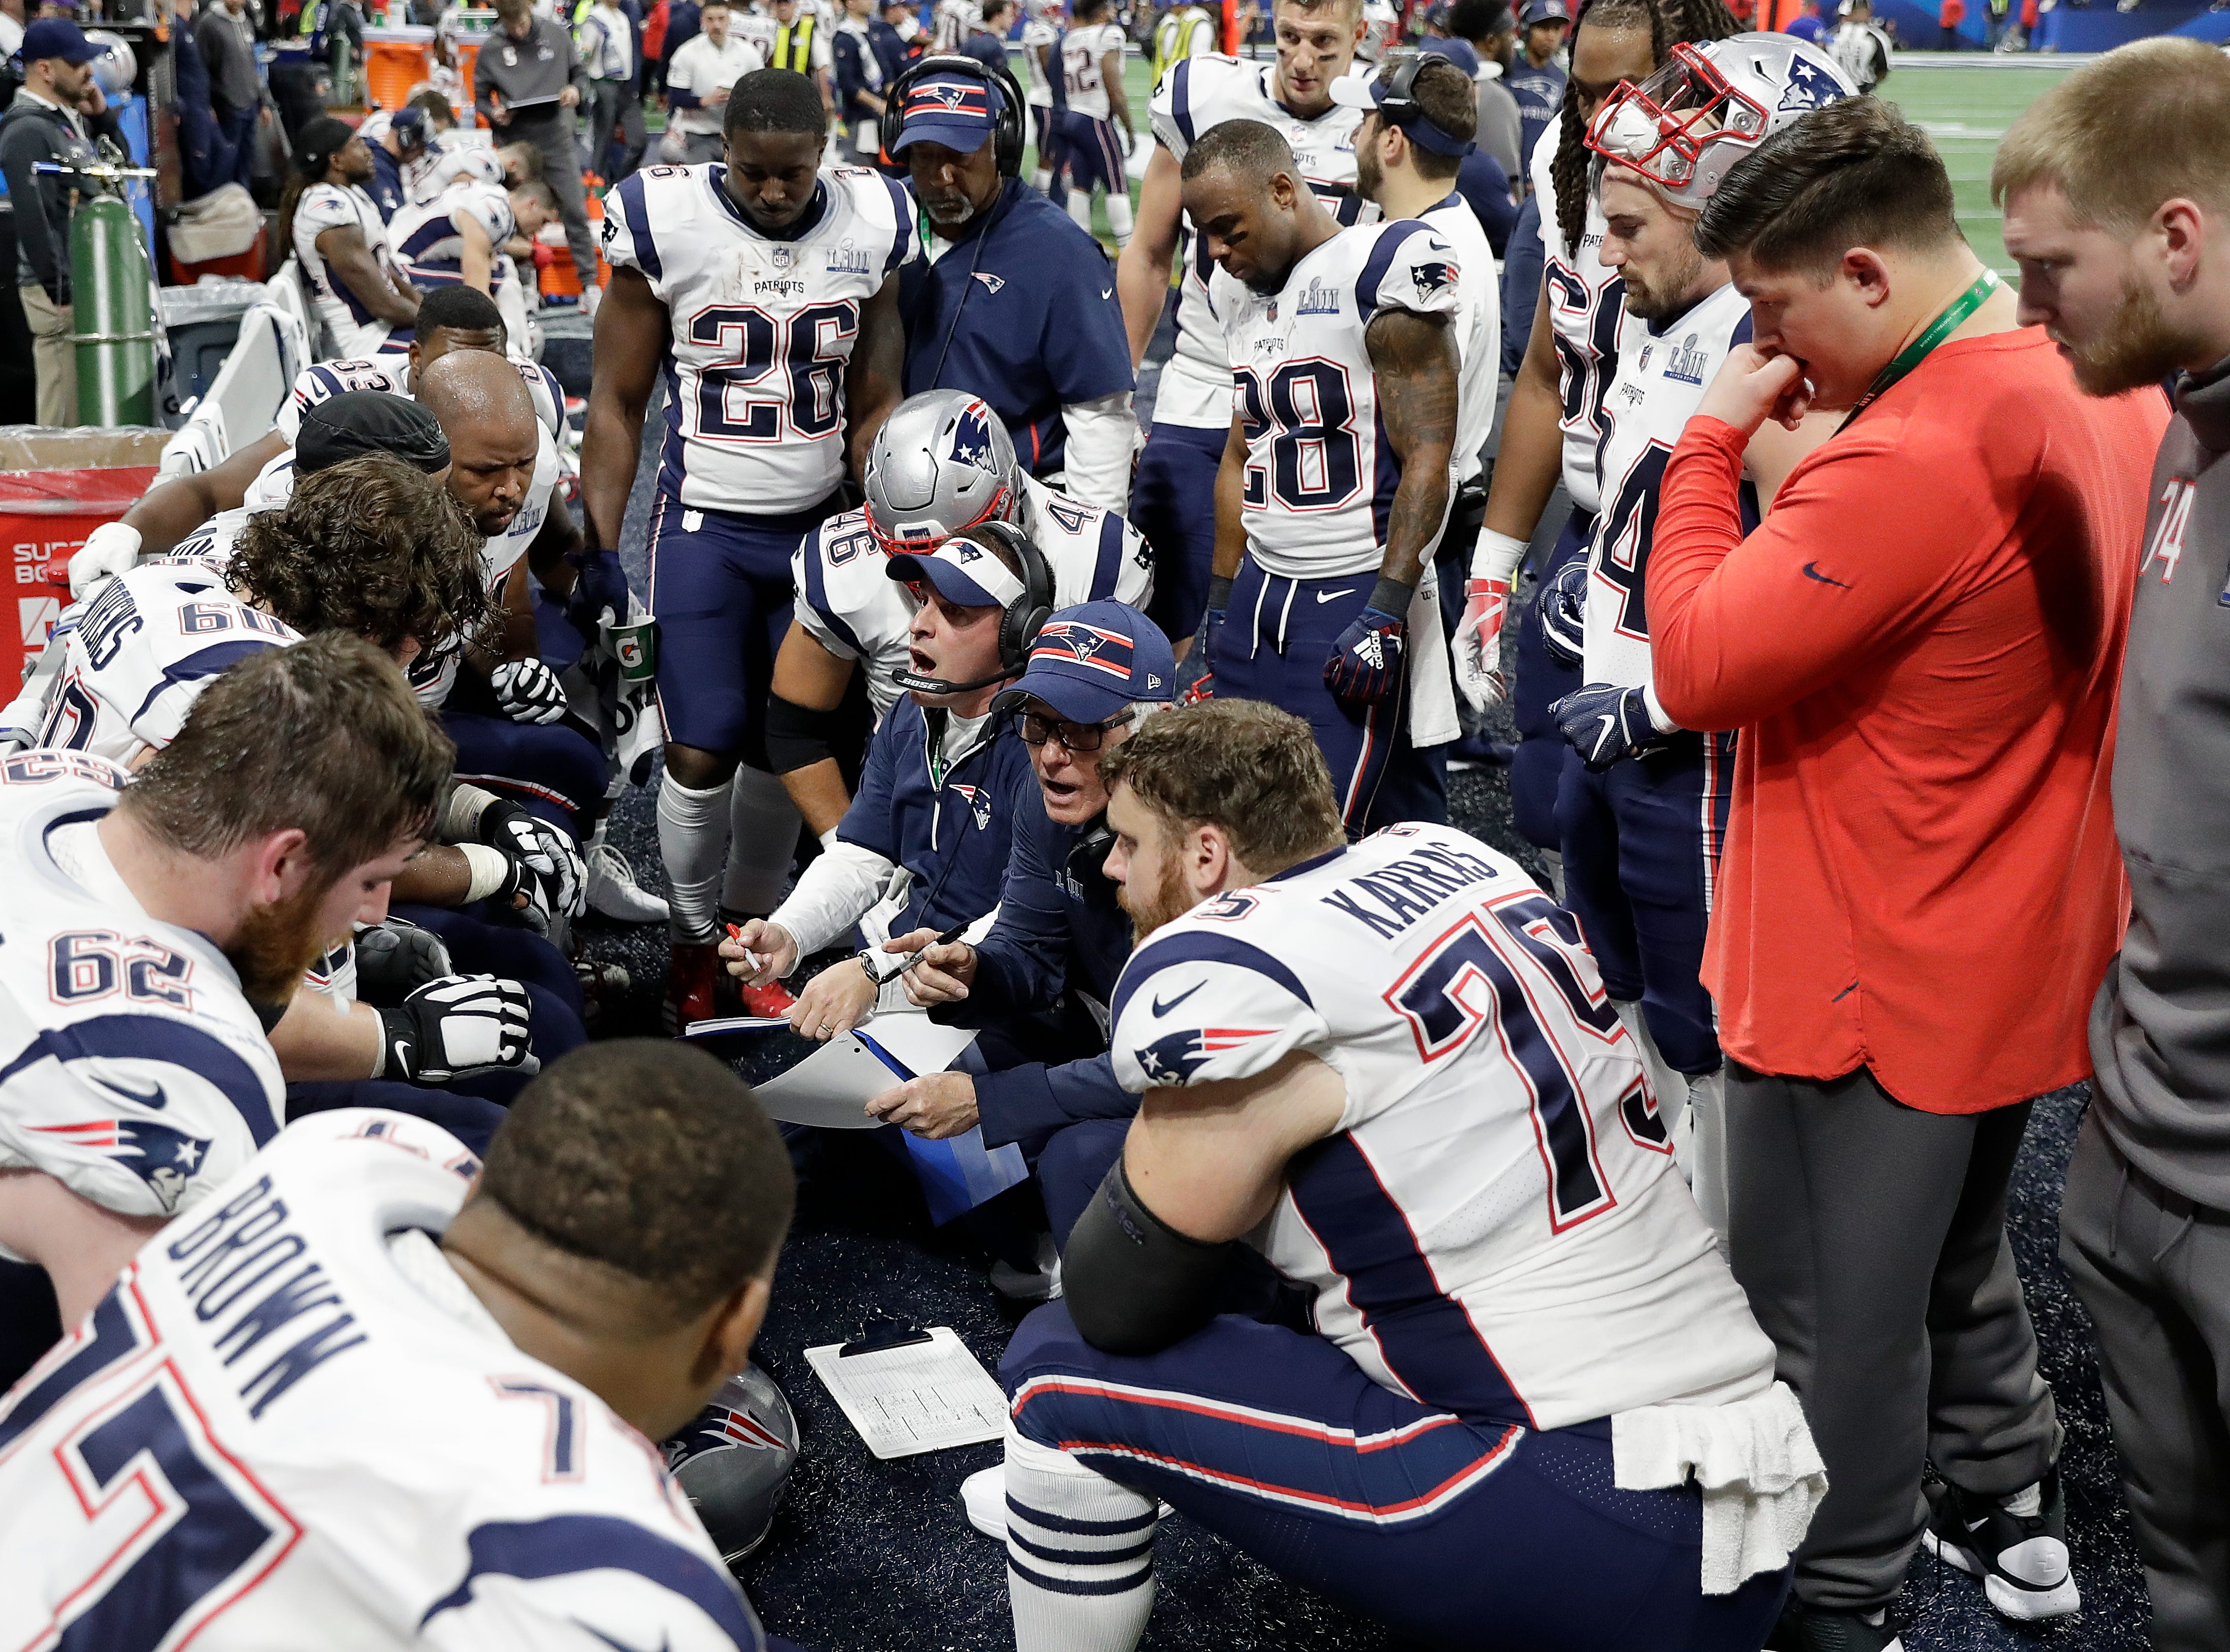 New England Patriots offensive coordinator Josh McDaniels, center, talks with players during the first half.